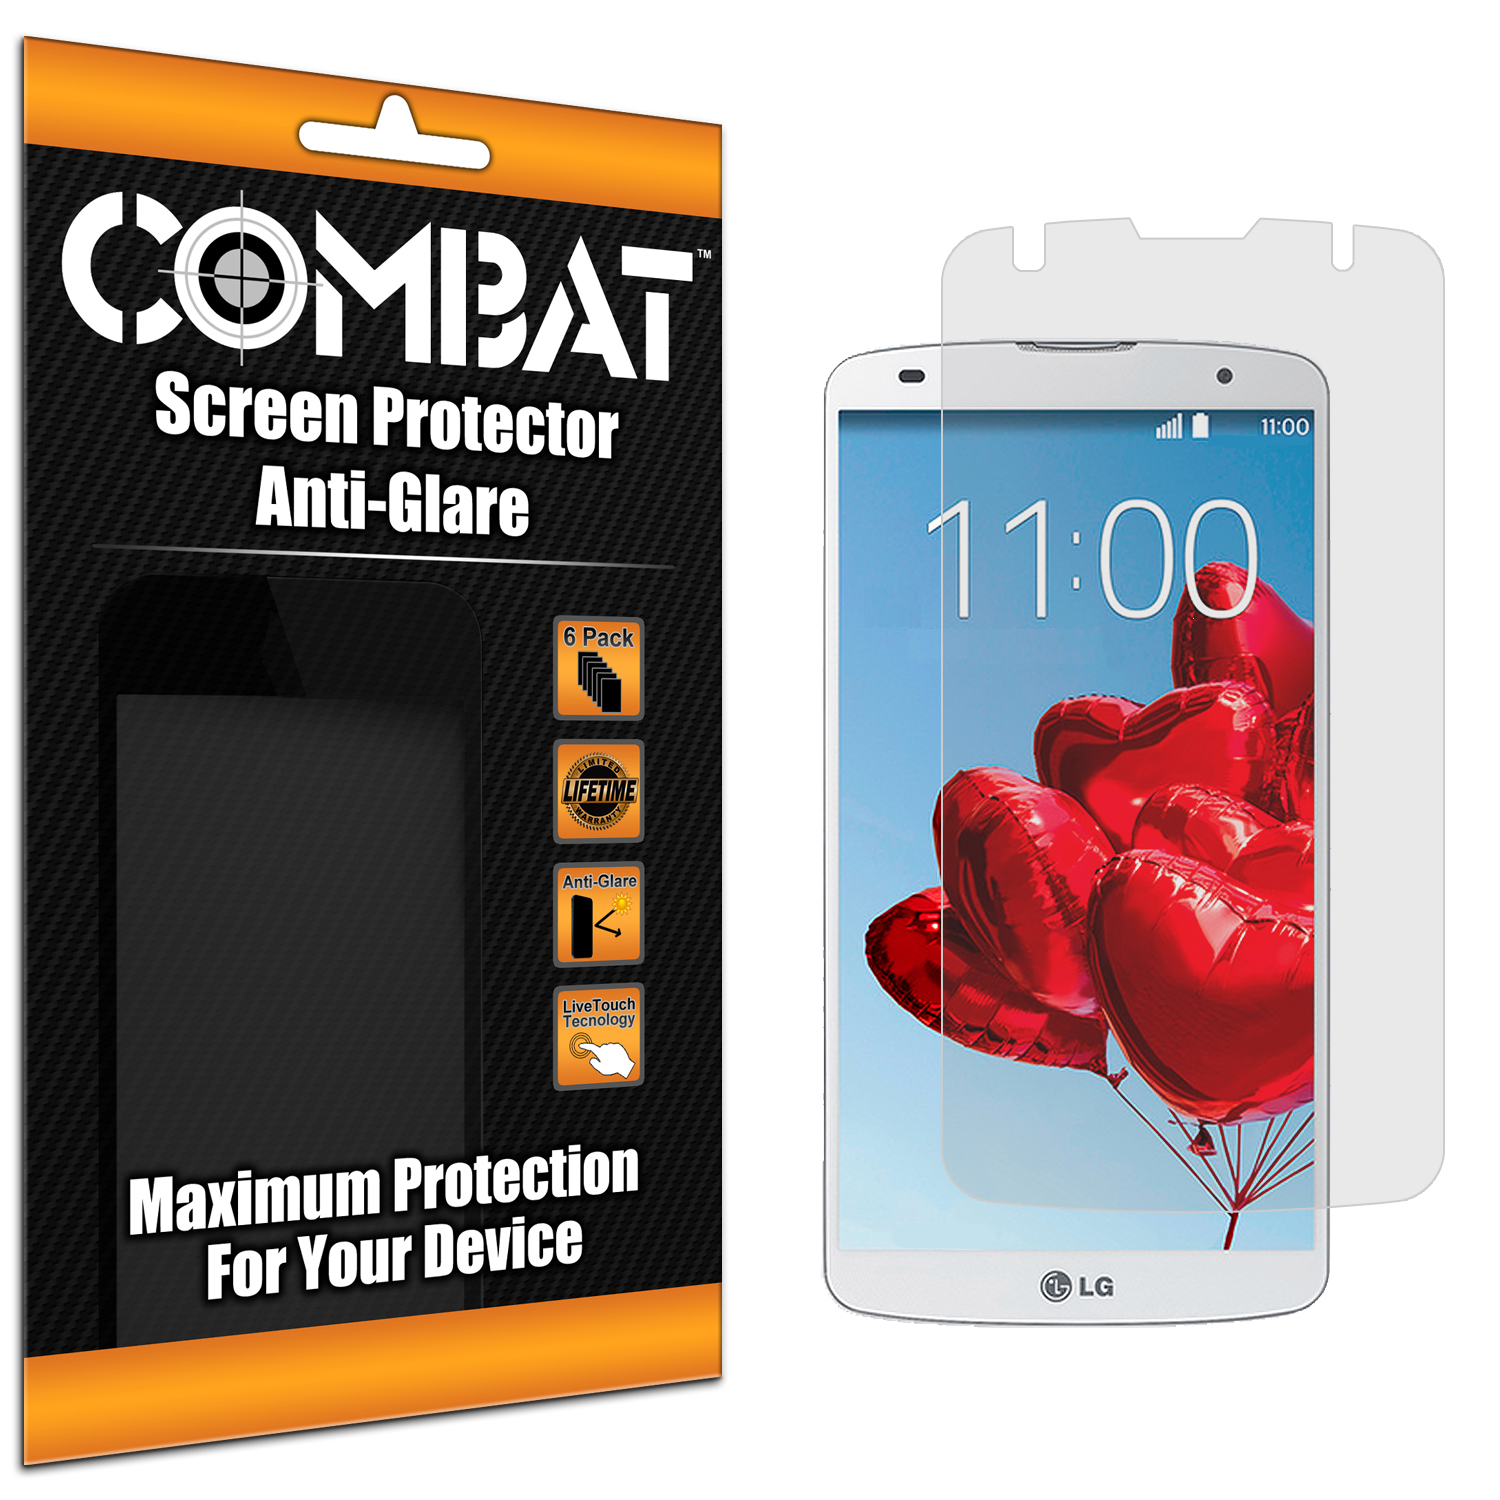 LG G Pro 2 Combat 6 Pack Anti-Glare Matte Screen Protector